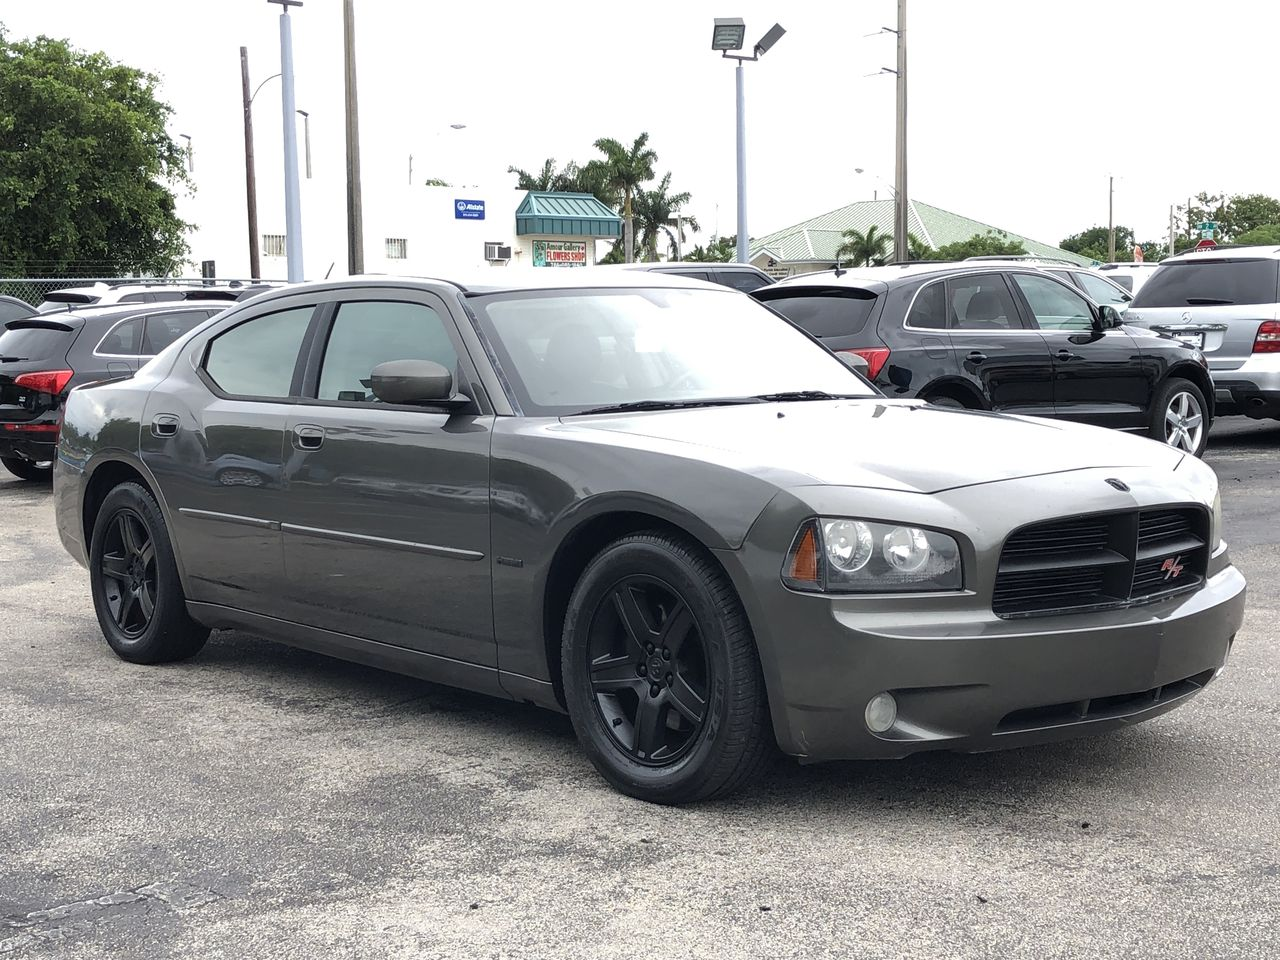 2008 Charger Rt >> 2008 Dodge Charger R T Sold Premier Auction Broker And